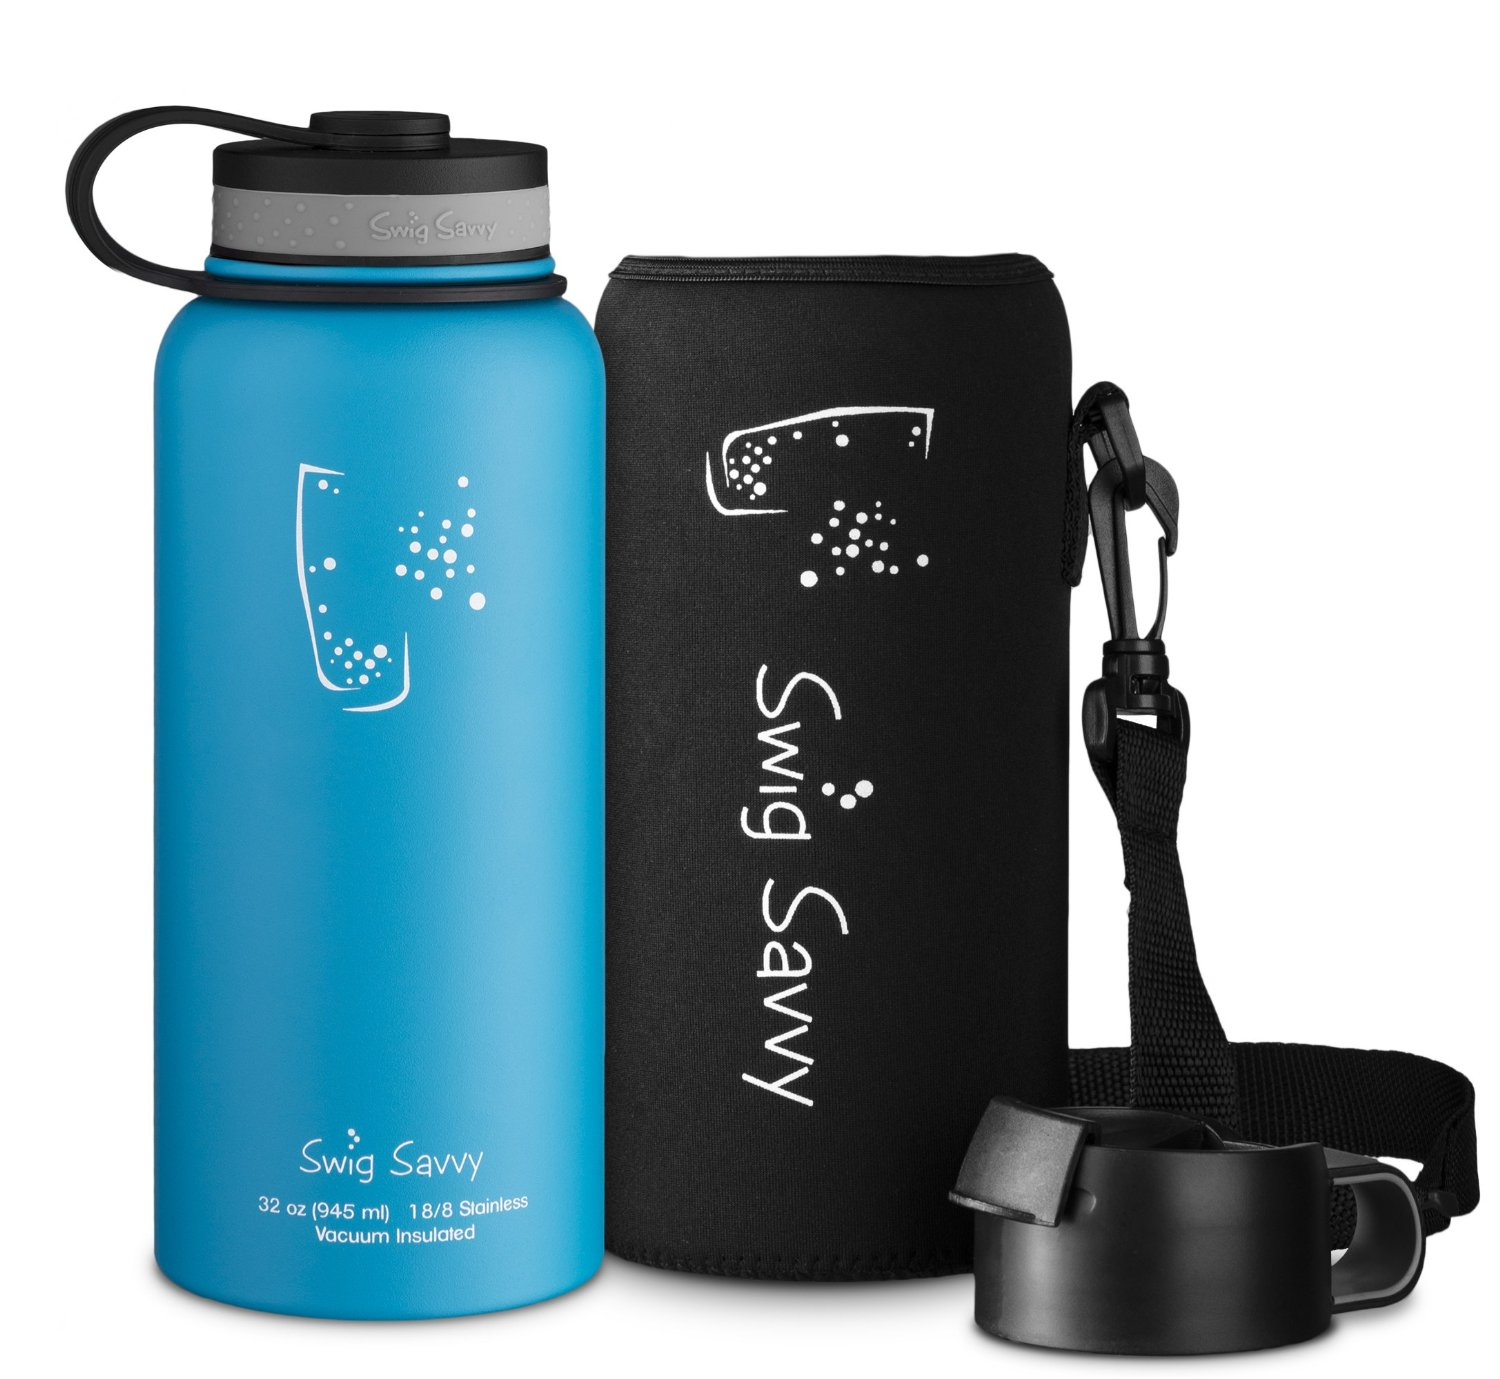 SWIG SAVVY Stainless Steel Vacuum Insulated Water Bottle - Wide Mouth - 32 oz Capacity - BPA Free - Double Wall Design - 100% Leak & Sweat Proof - Includes Pouch & Coffee Lid